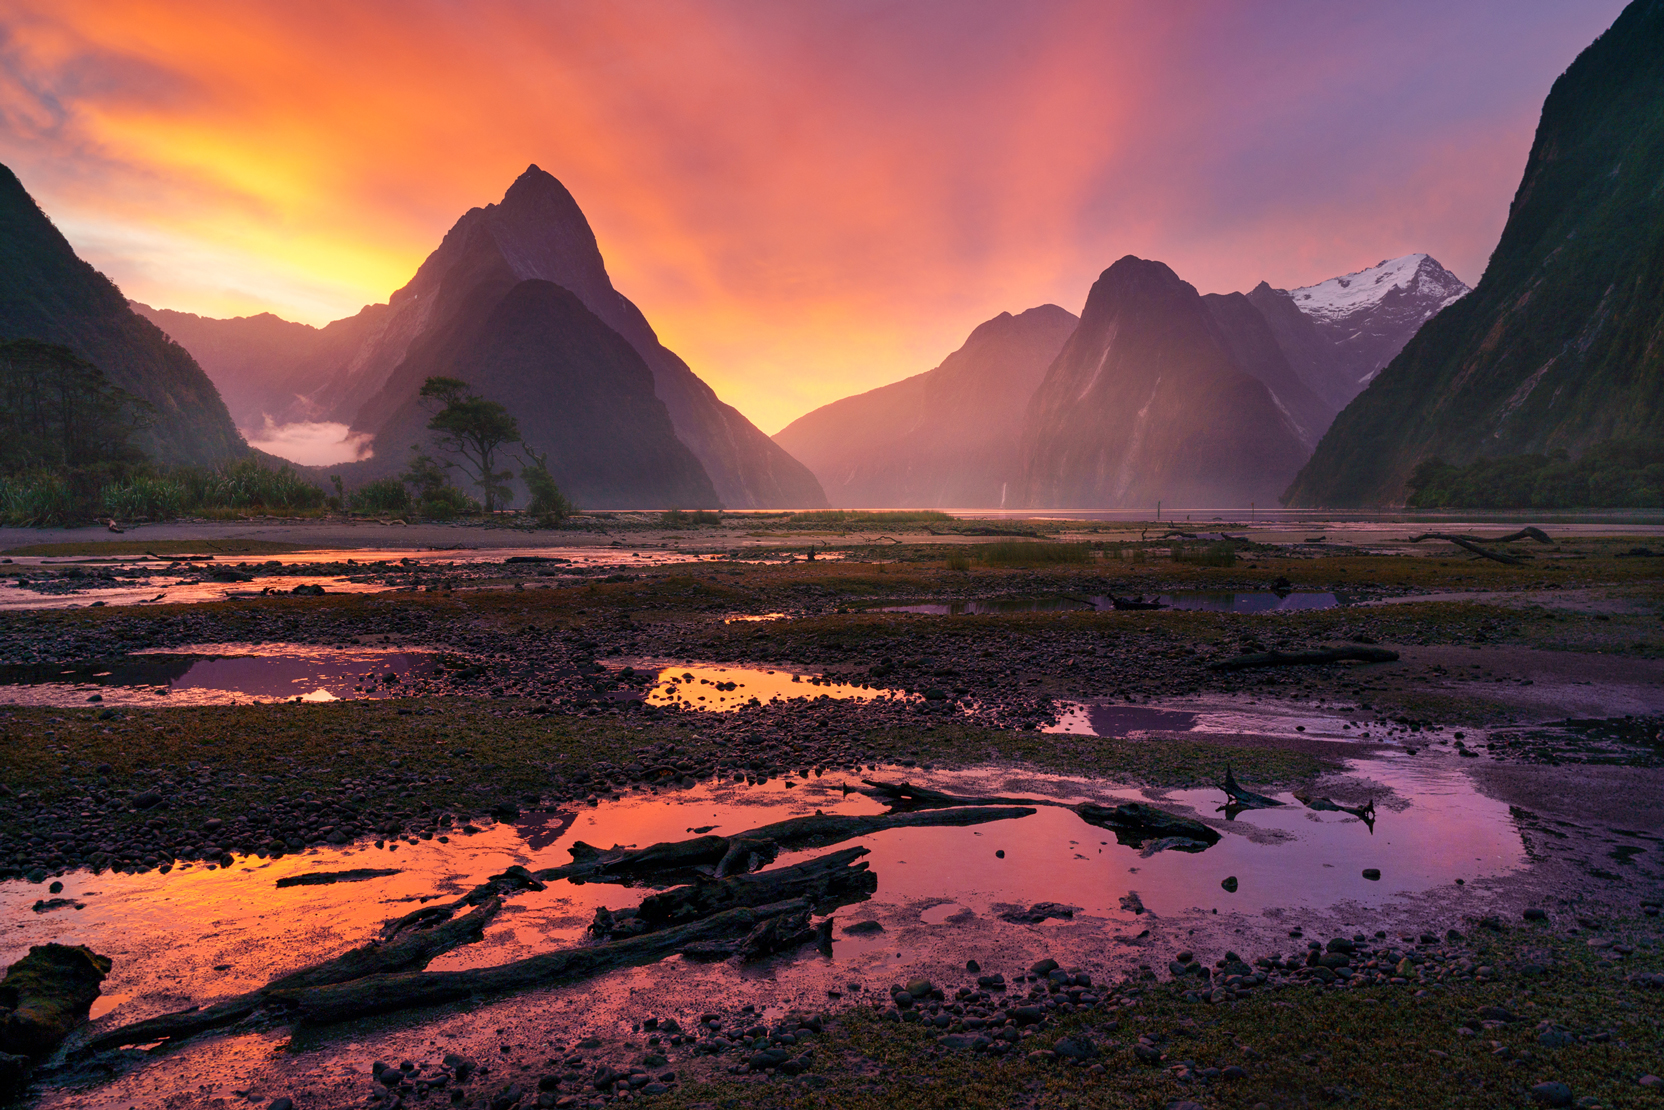 Milford Sound sunset photography tutorial